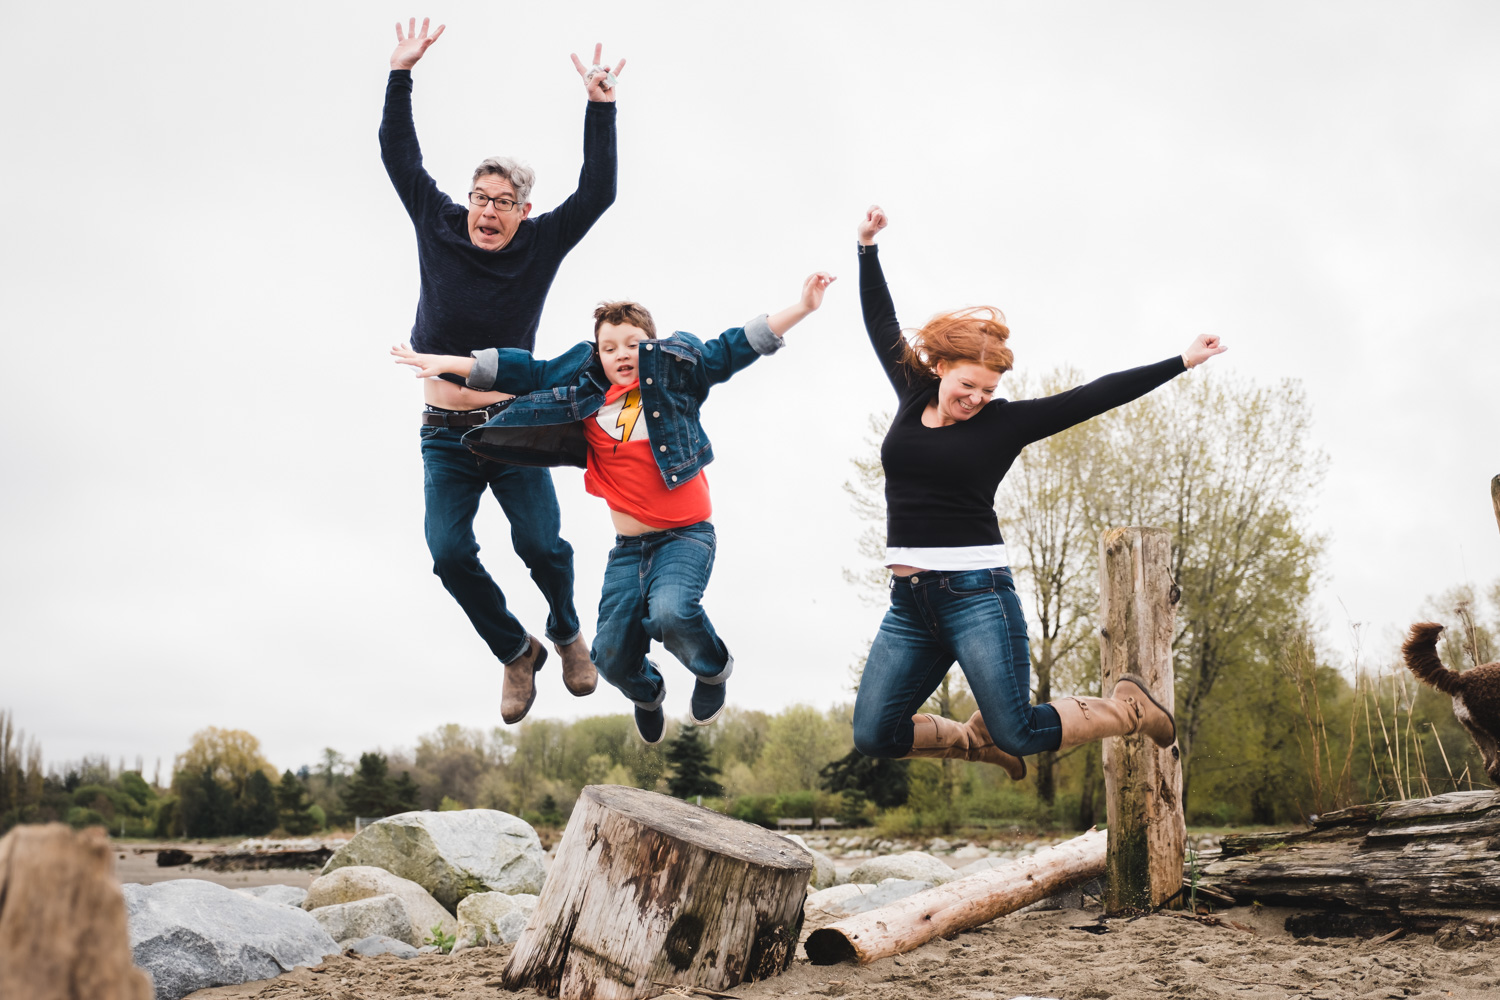 Candid-Family-Jumping.jpg